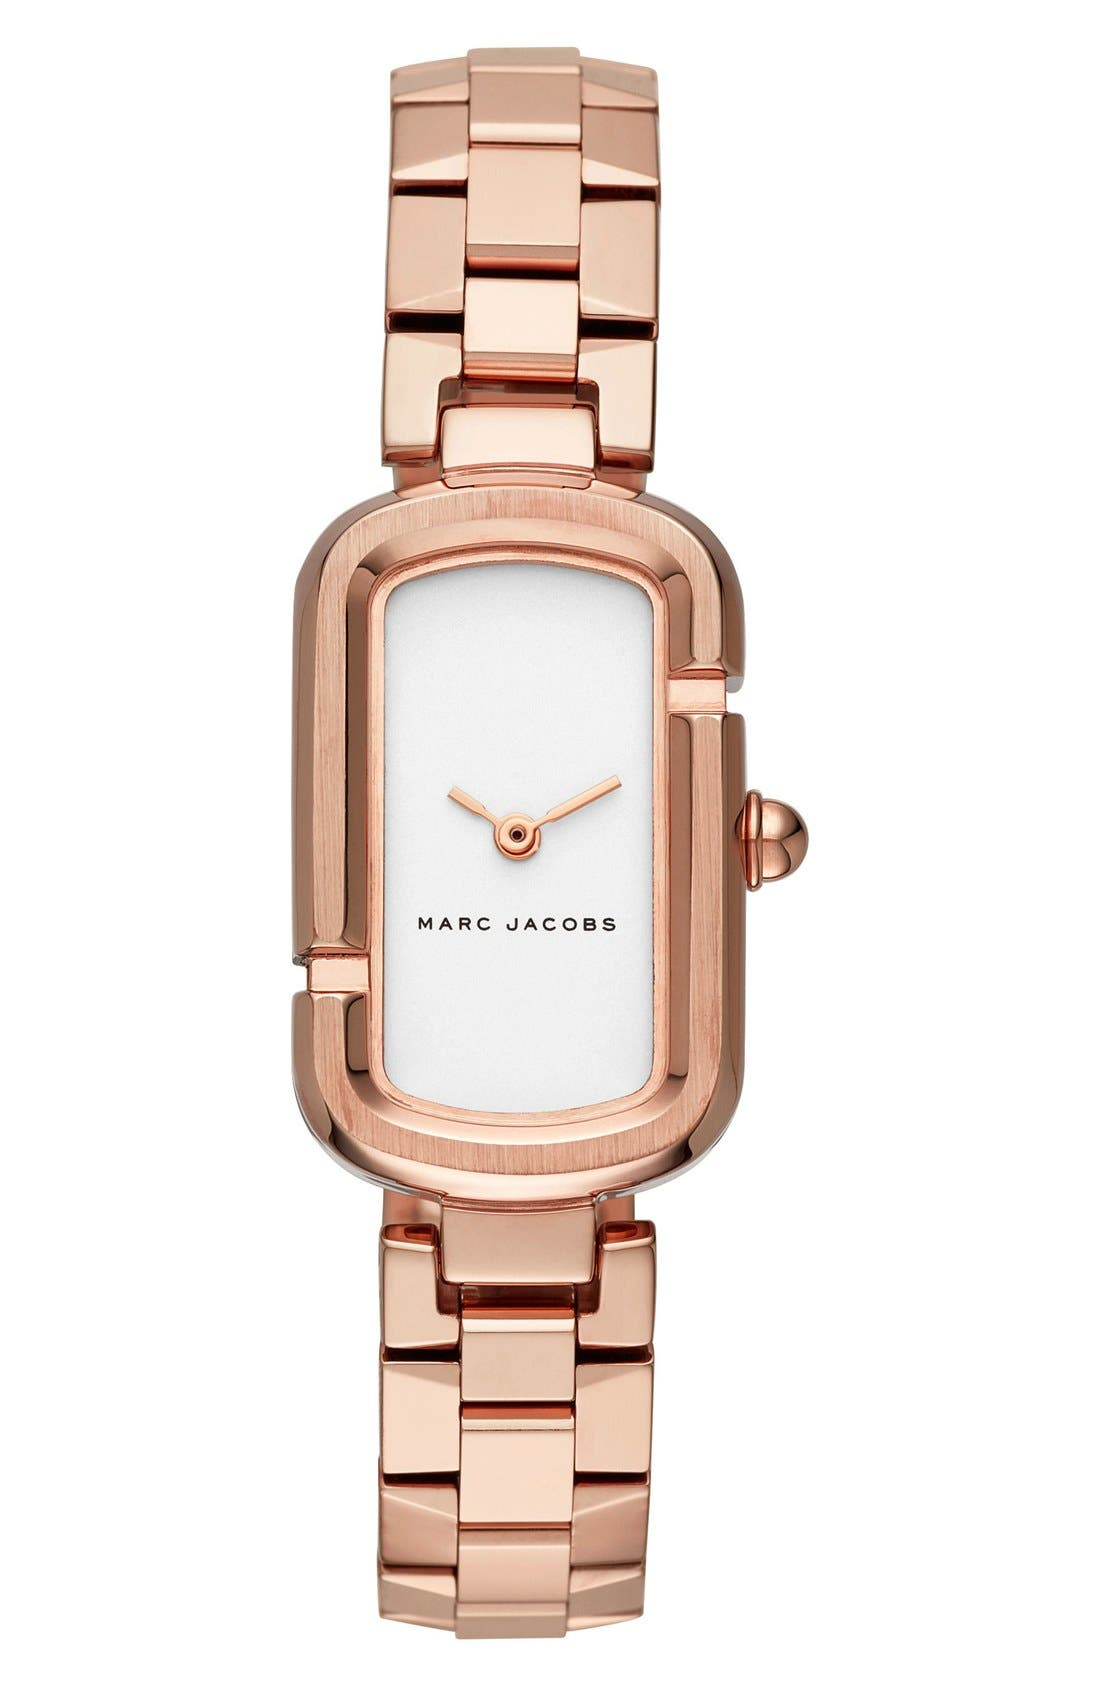 Main Image - MARC JACOBS 'The Jacobs' Bracelet Watch, 31mm